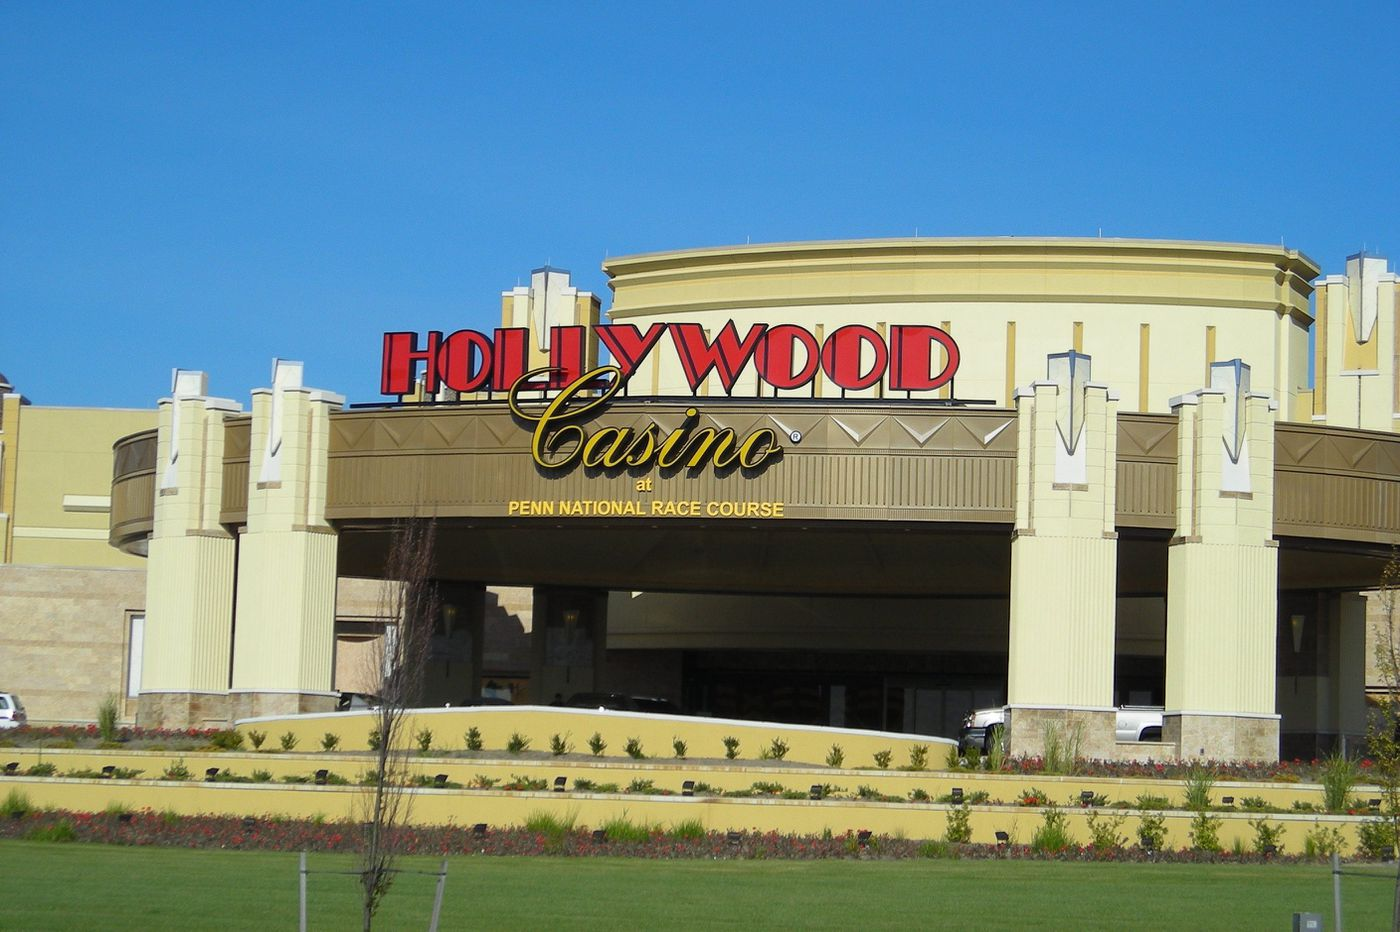 First Pa. casino applies for sports-betting license. But not in time for start of NFL season